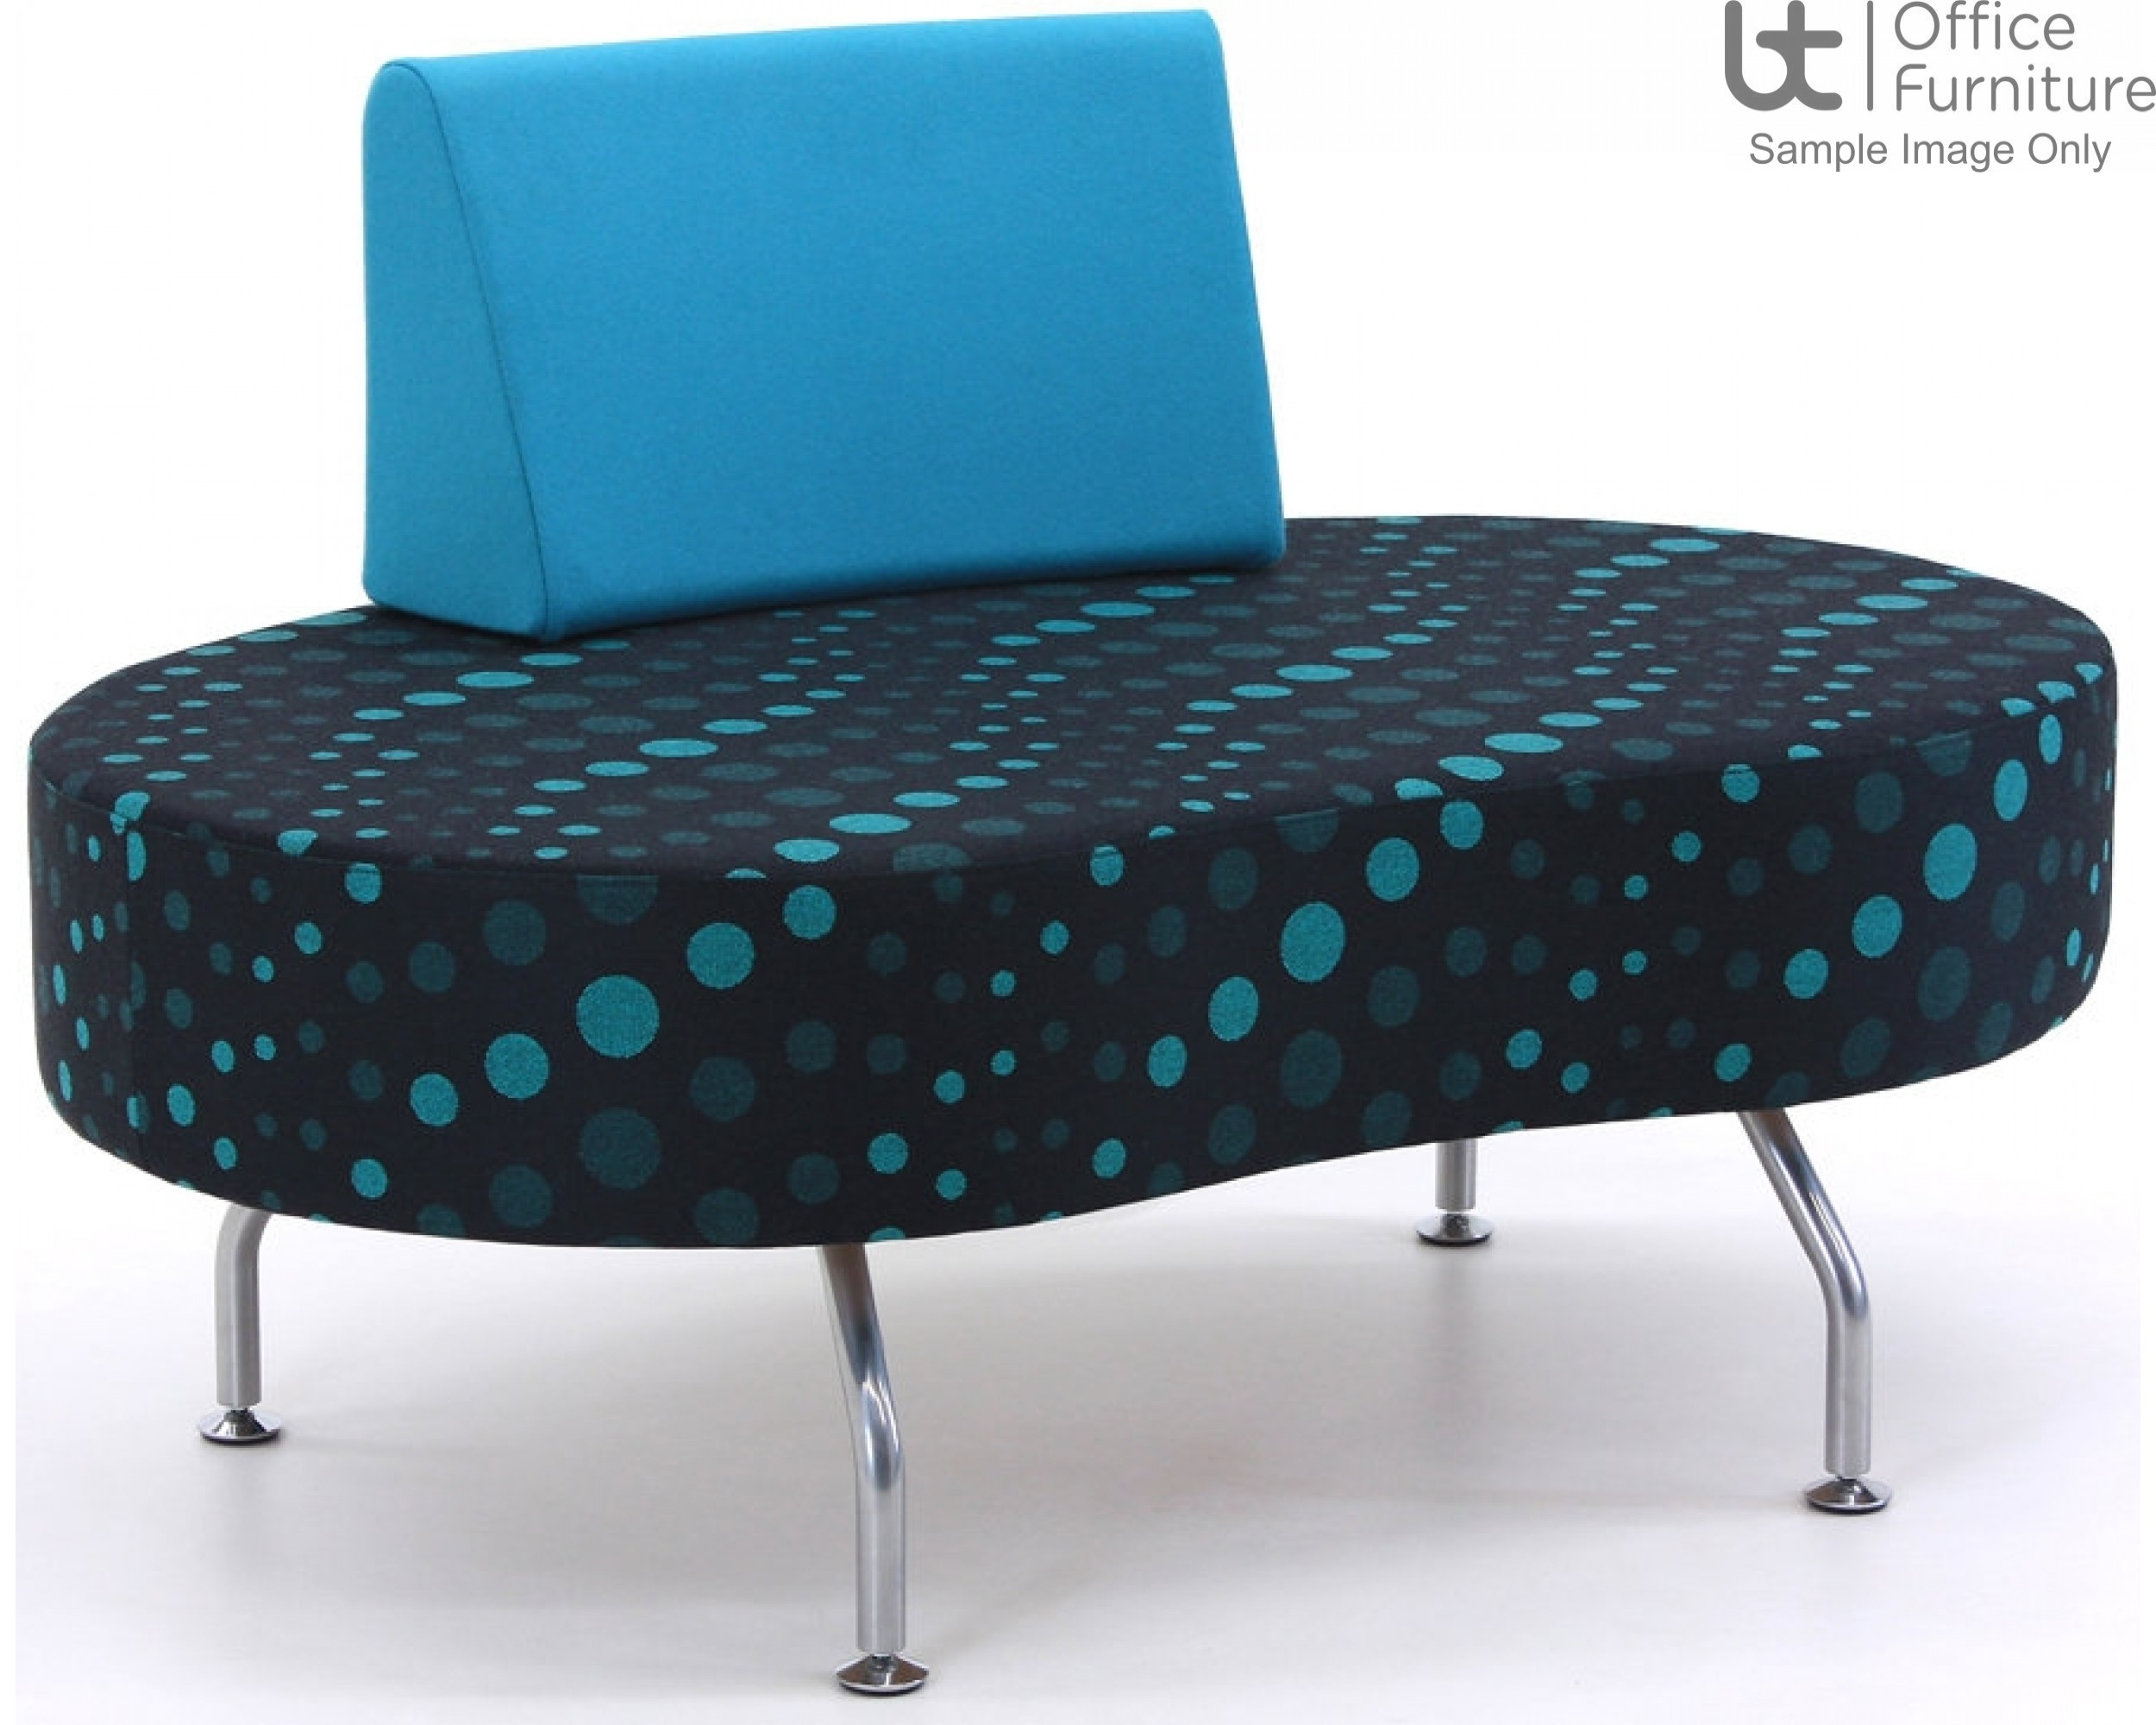 Verco Soft Seating - Brix Coffee Bean Shaped Unit with a Single Back